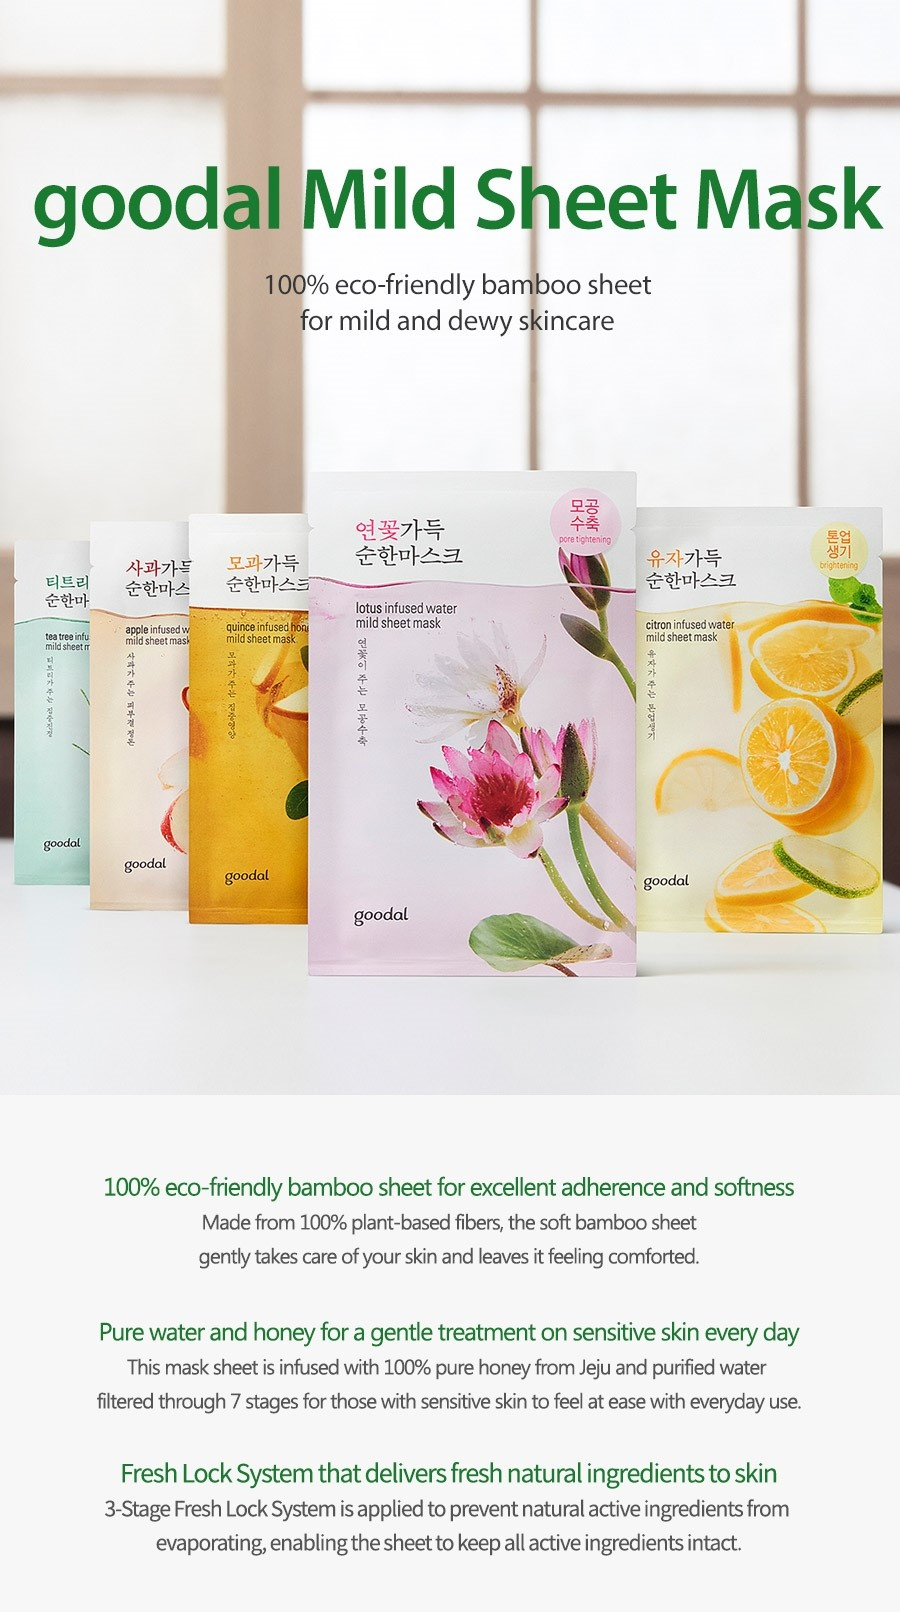 apple infused water mild sheet mask-2